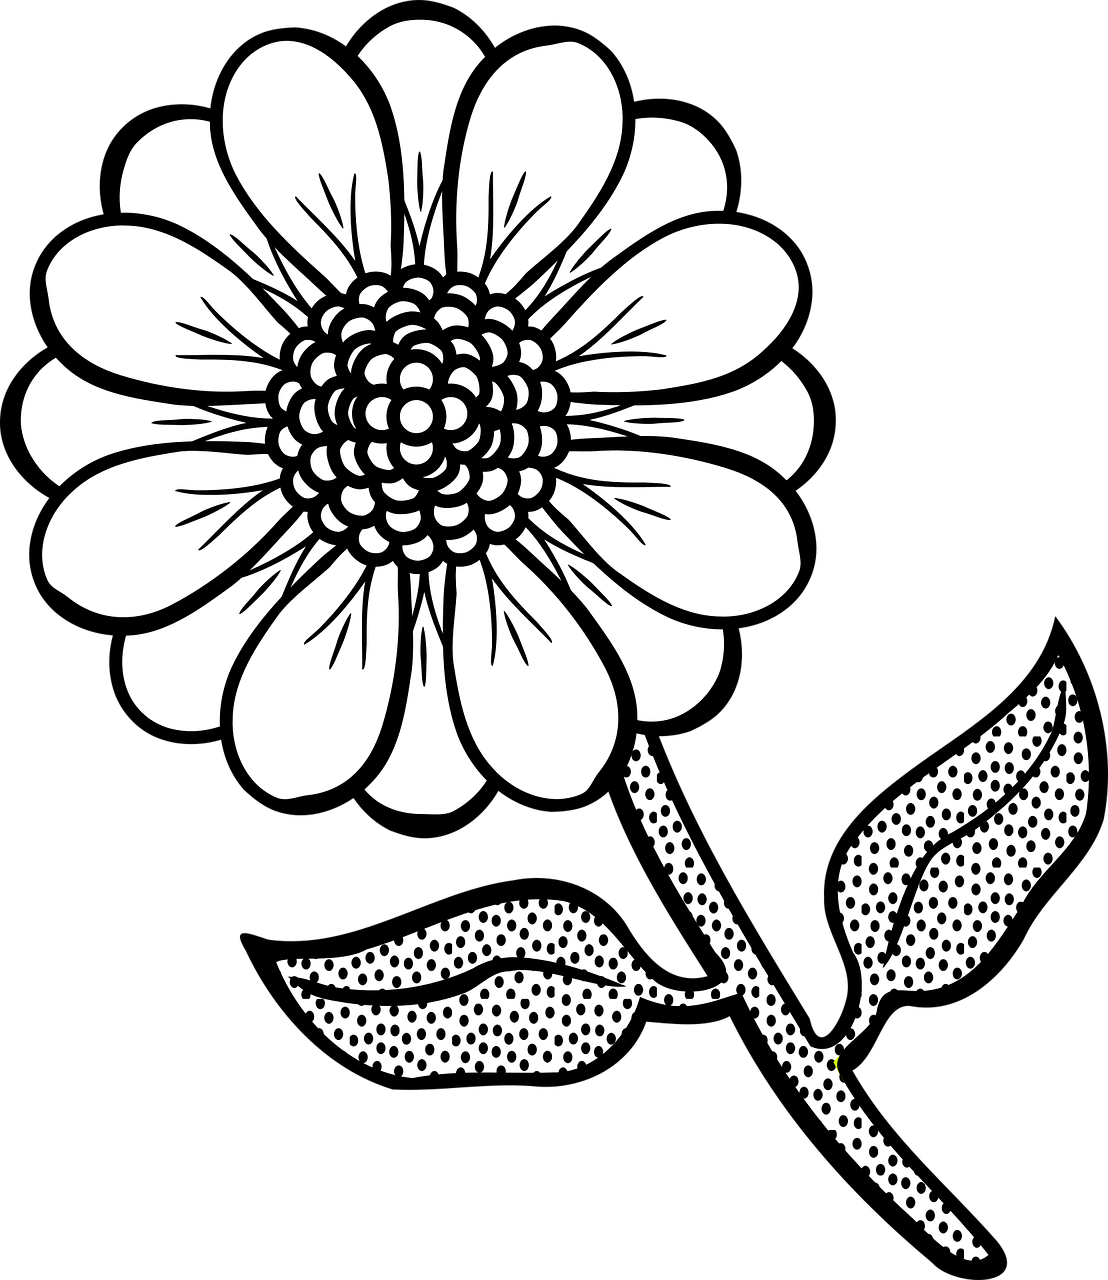 Free printable photos of flowers banner transparent library Free printable flower coloring pages: 16 pics - HOW-TO-DRAW in 1 minute banner transparent library